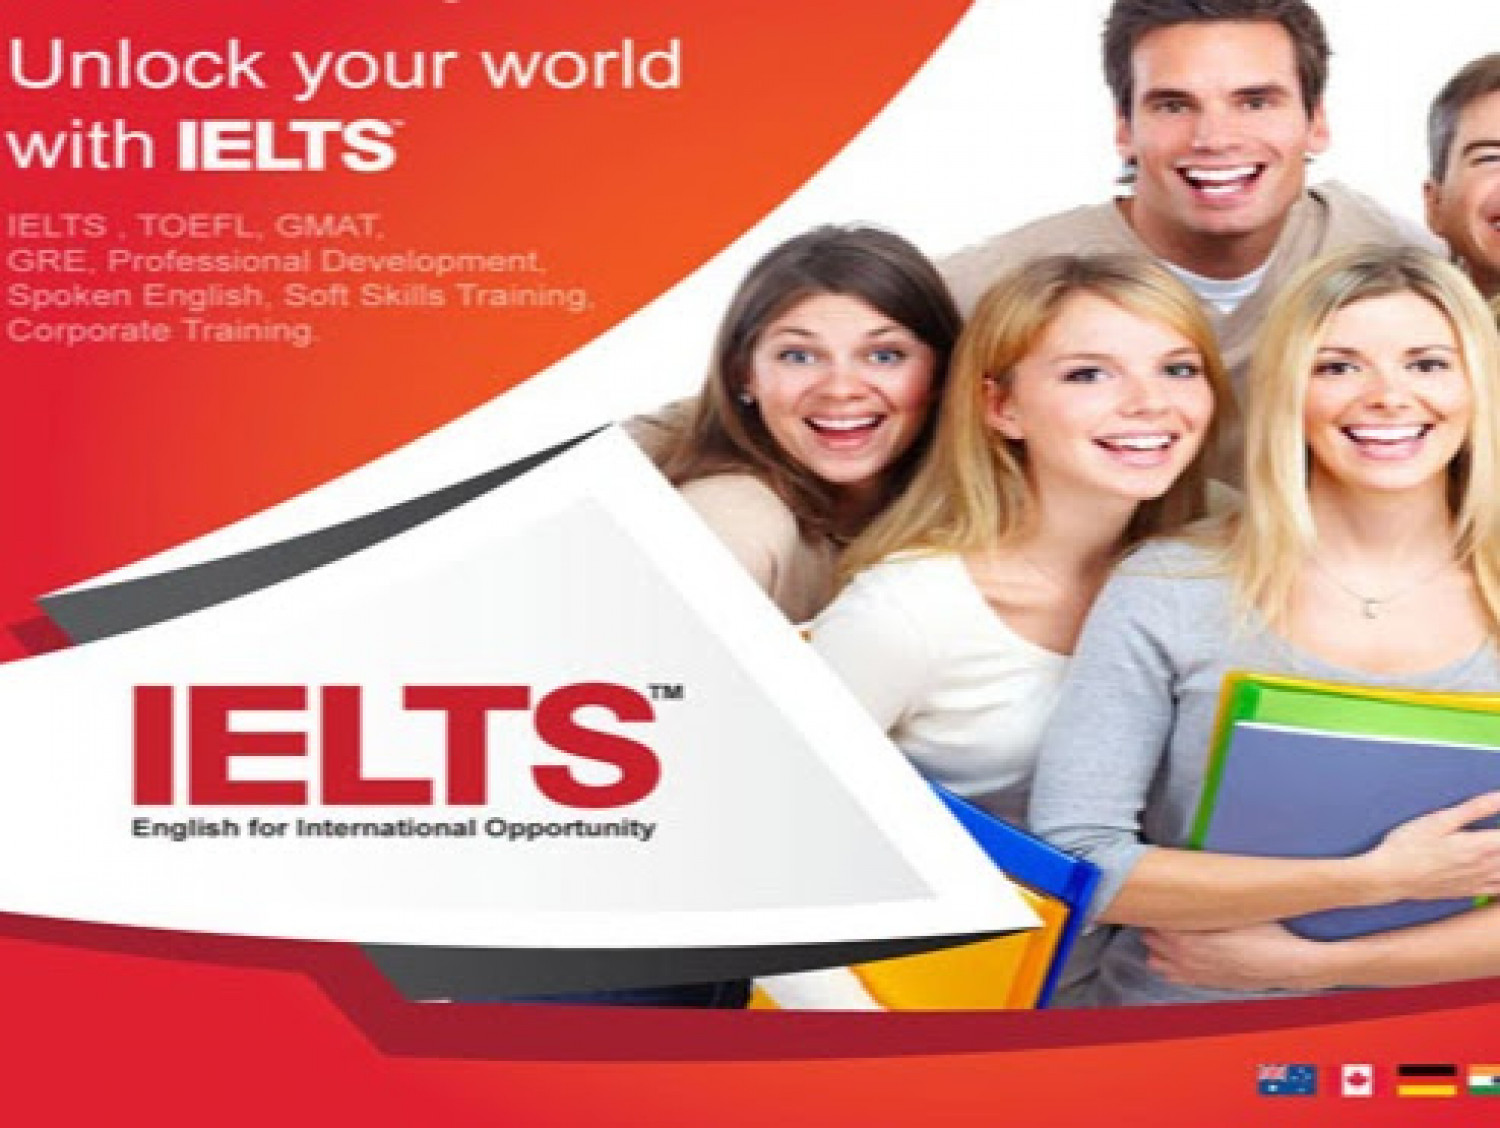 Buy IELTS certificate without exam   Fake Diploma Certificate Infographic